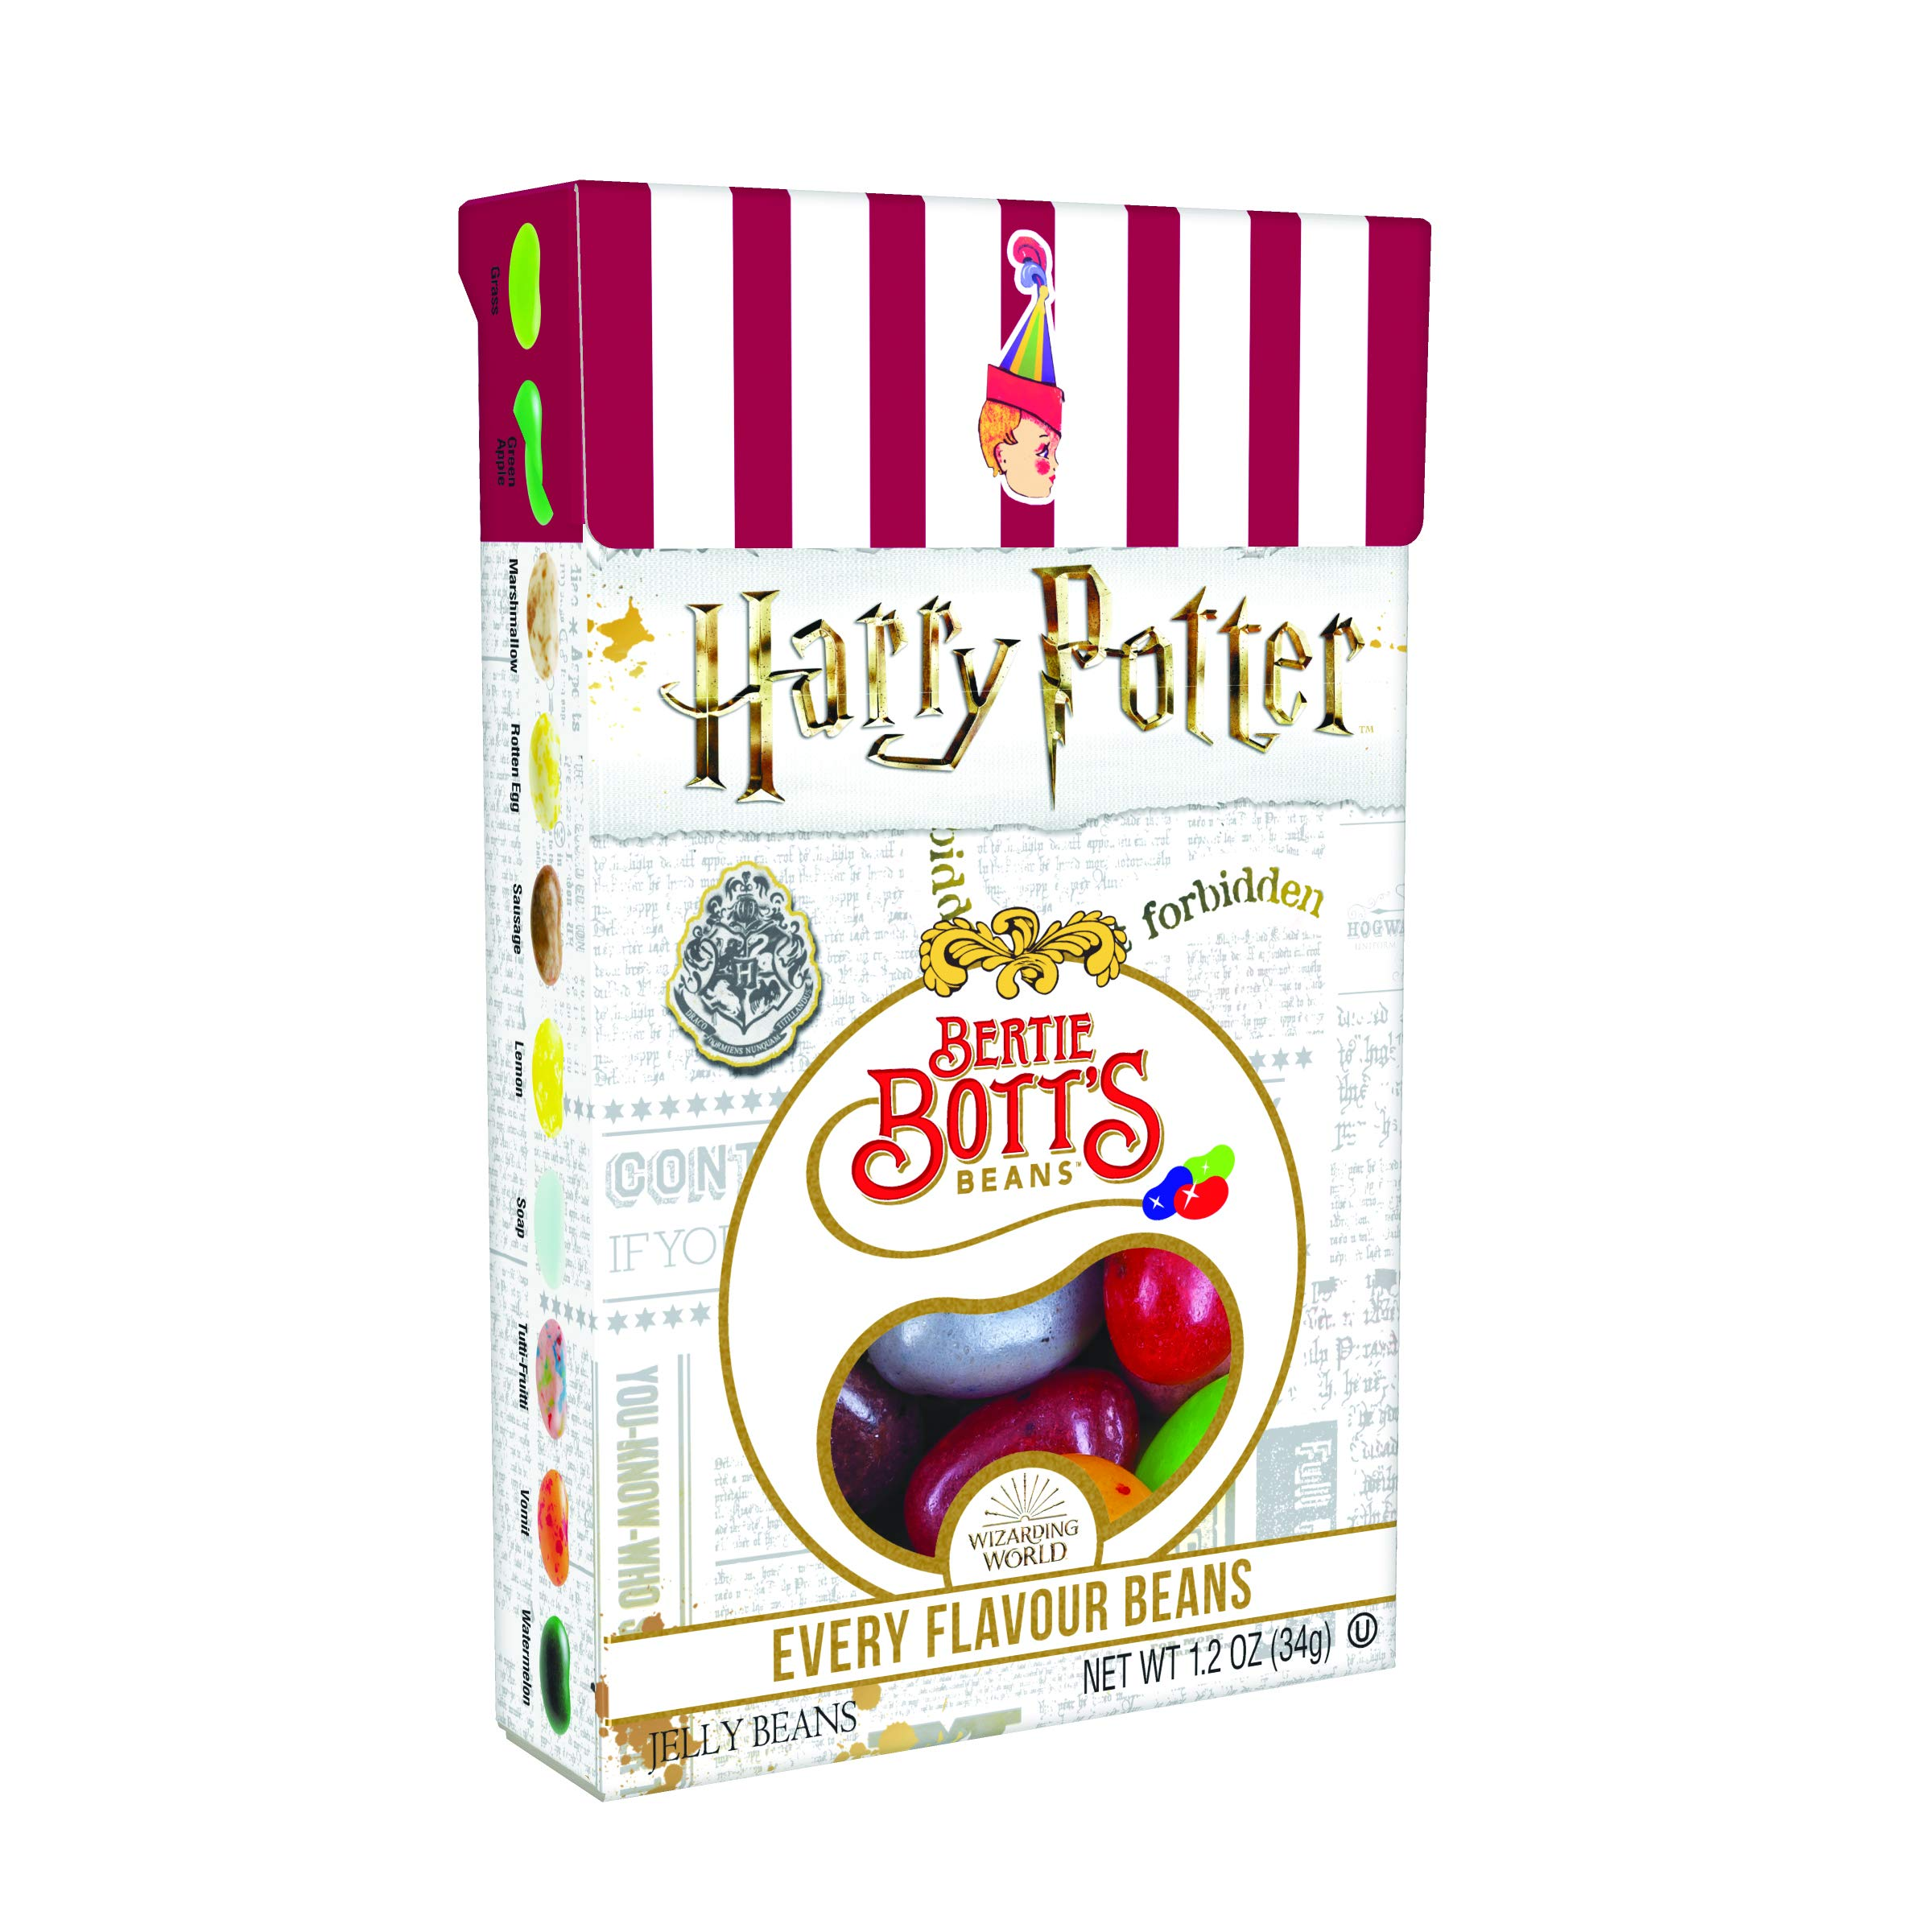 Jelly Belly Harry Potter Bertie Bott's Every Flavor Jelly Beans, 1.2-oz, 48 Pack by Jelly Belly